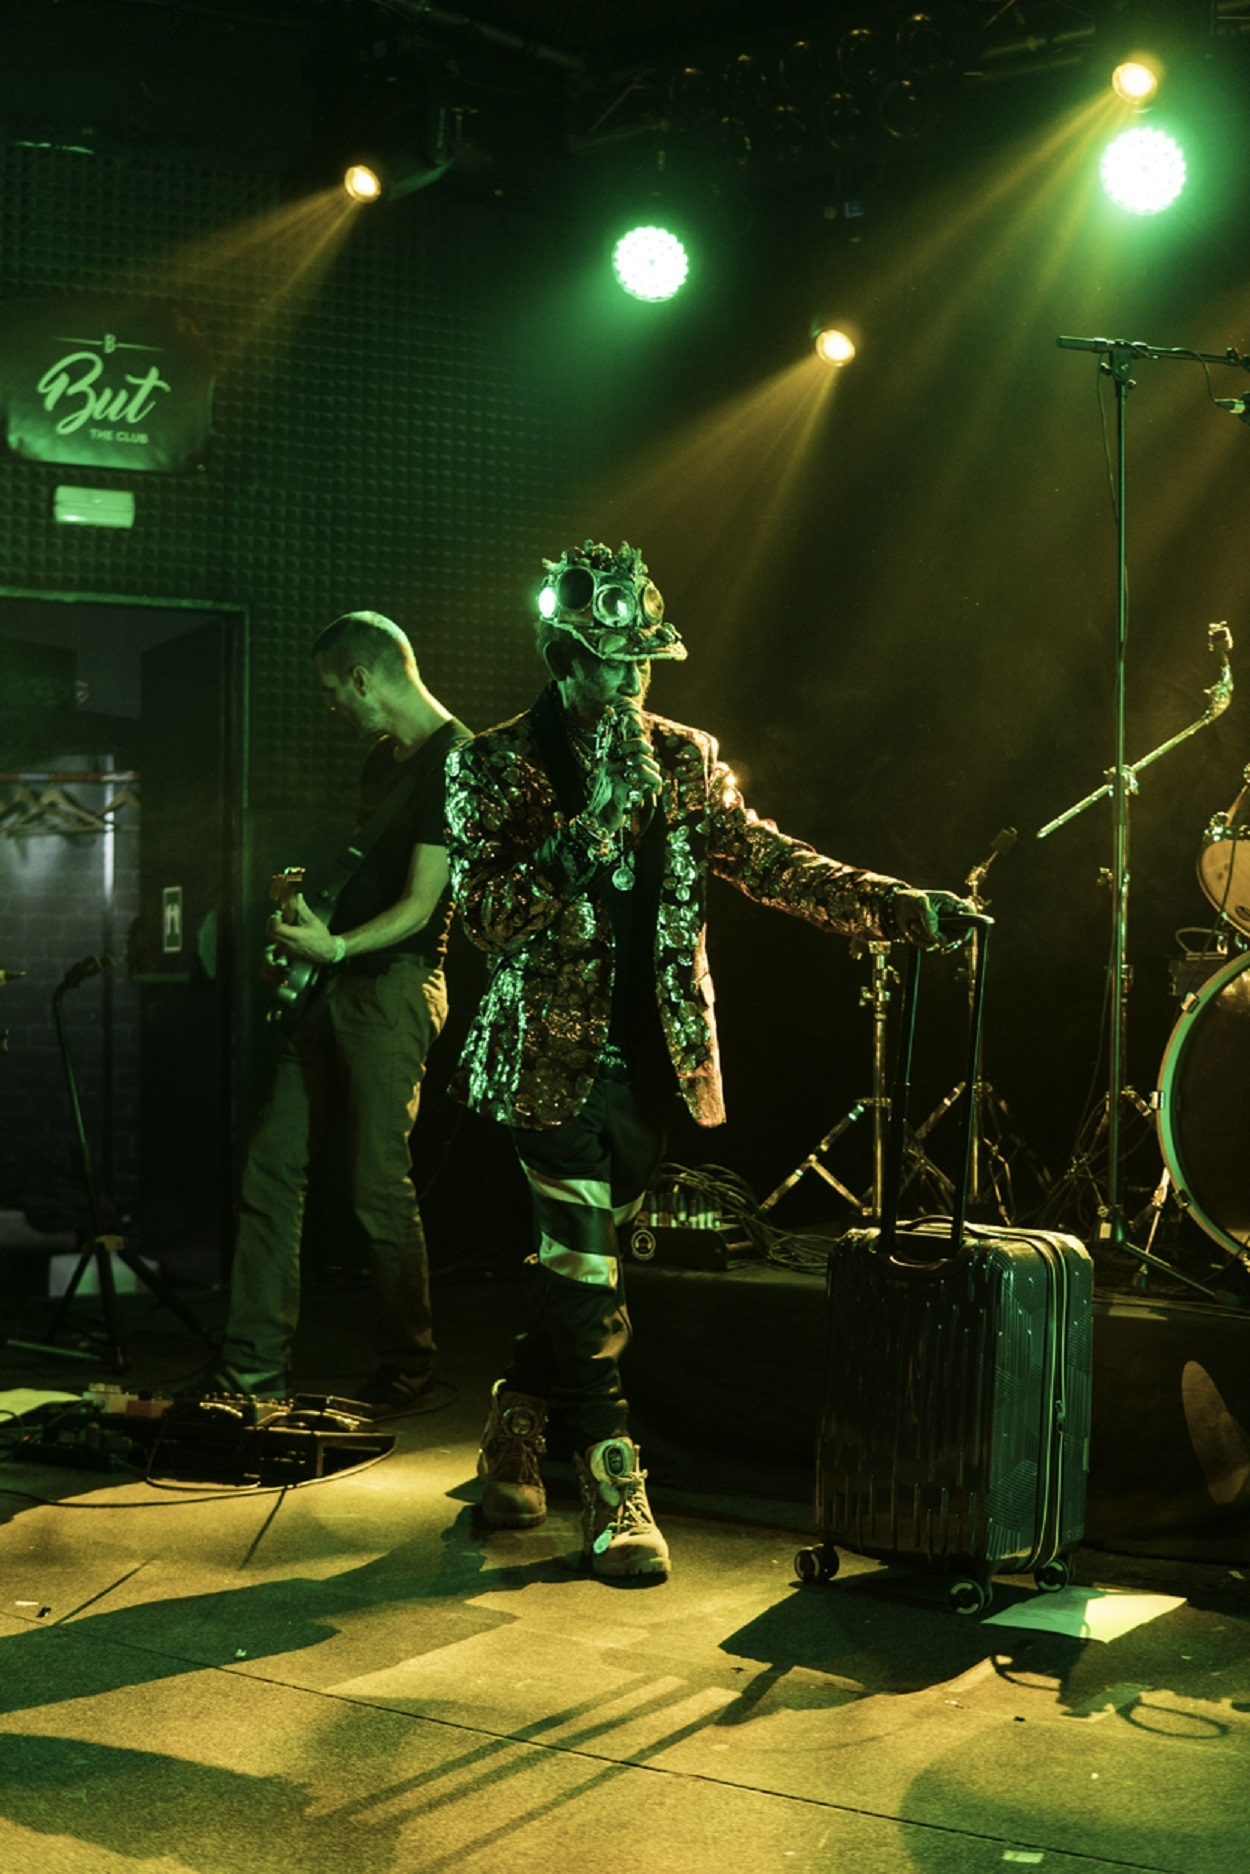 LIVE/190404-lee-scratch-perry-but-madrid-review/190404-lee-scratch-perry-entrance.jpg